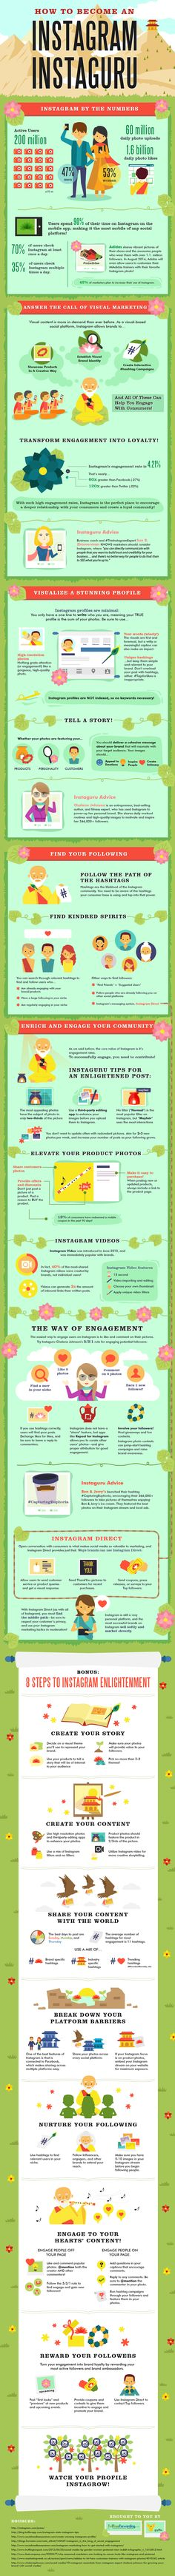 Social Media Marketing On Instagram: Become An Instaguru — #infographic / TechNews24h.com